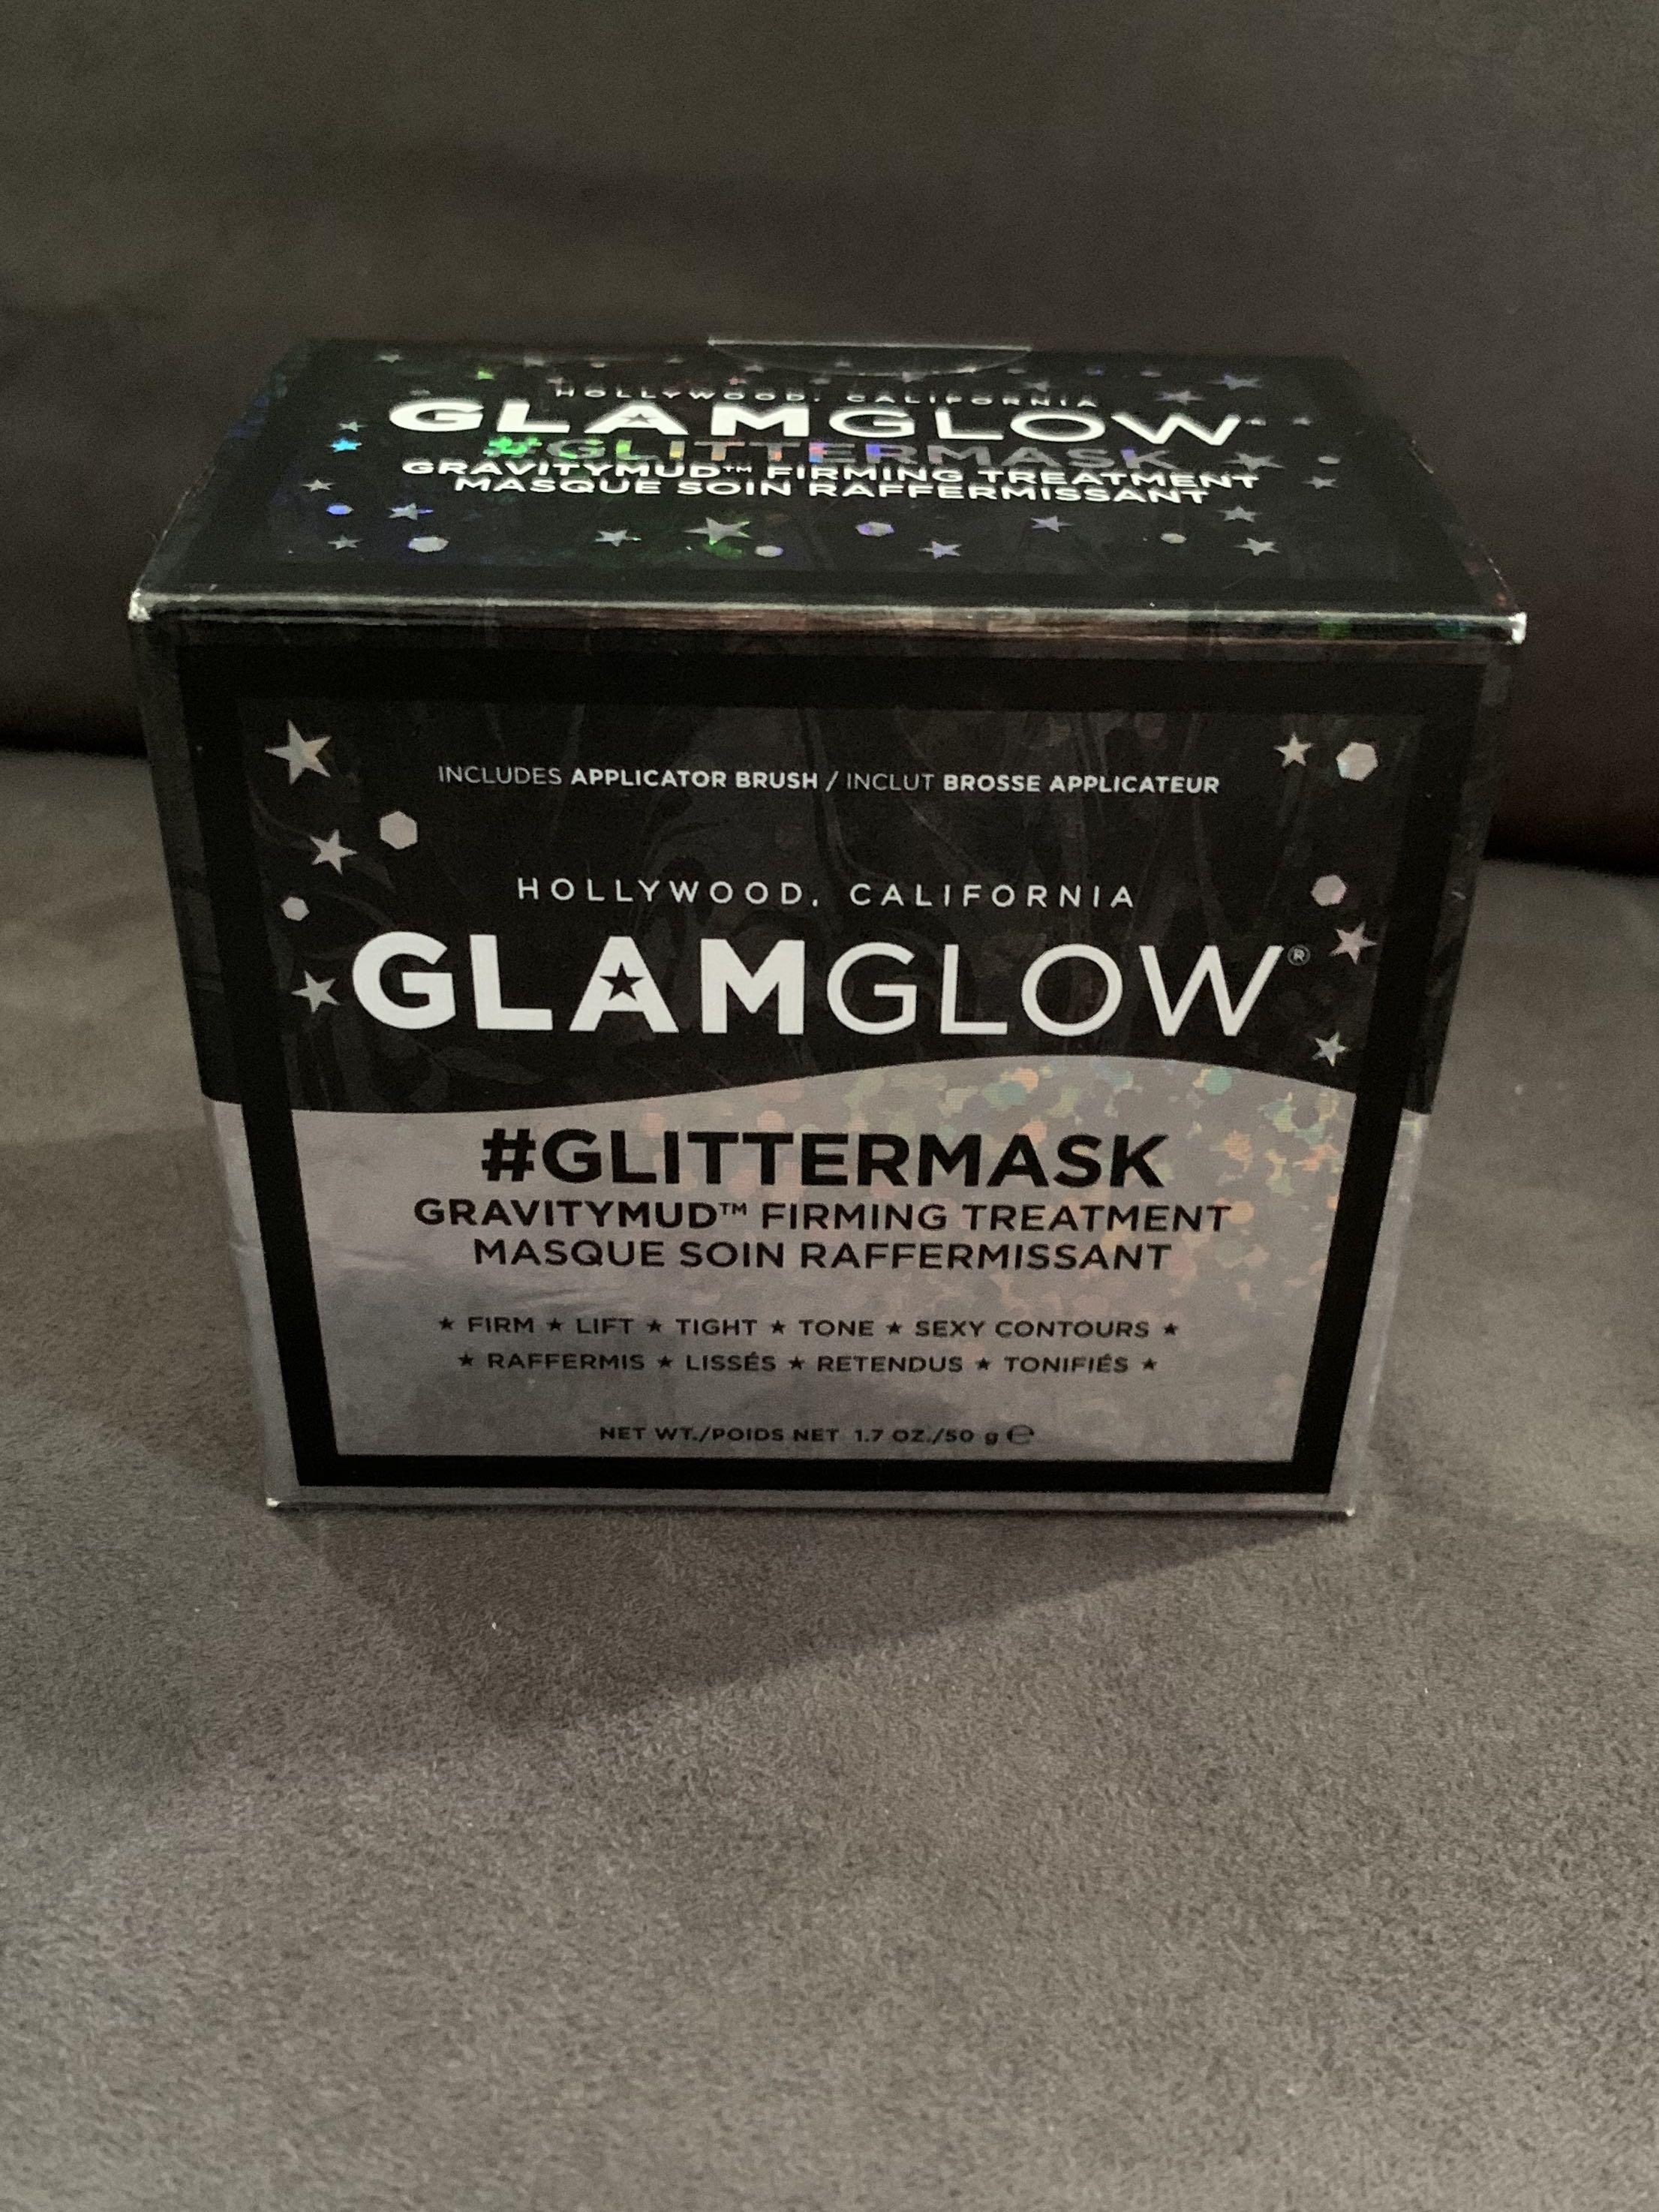 GlamGlow glitter mask gravitymud firming treatment 50g BNIB